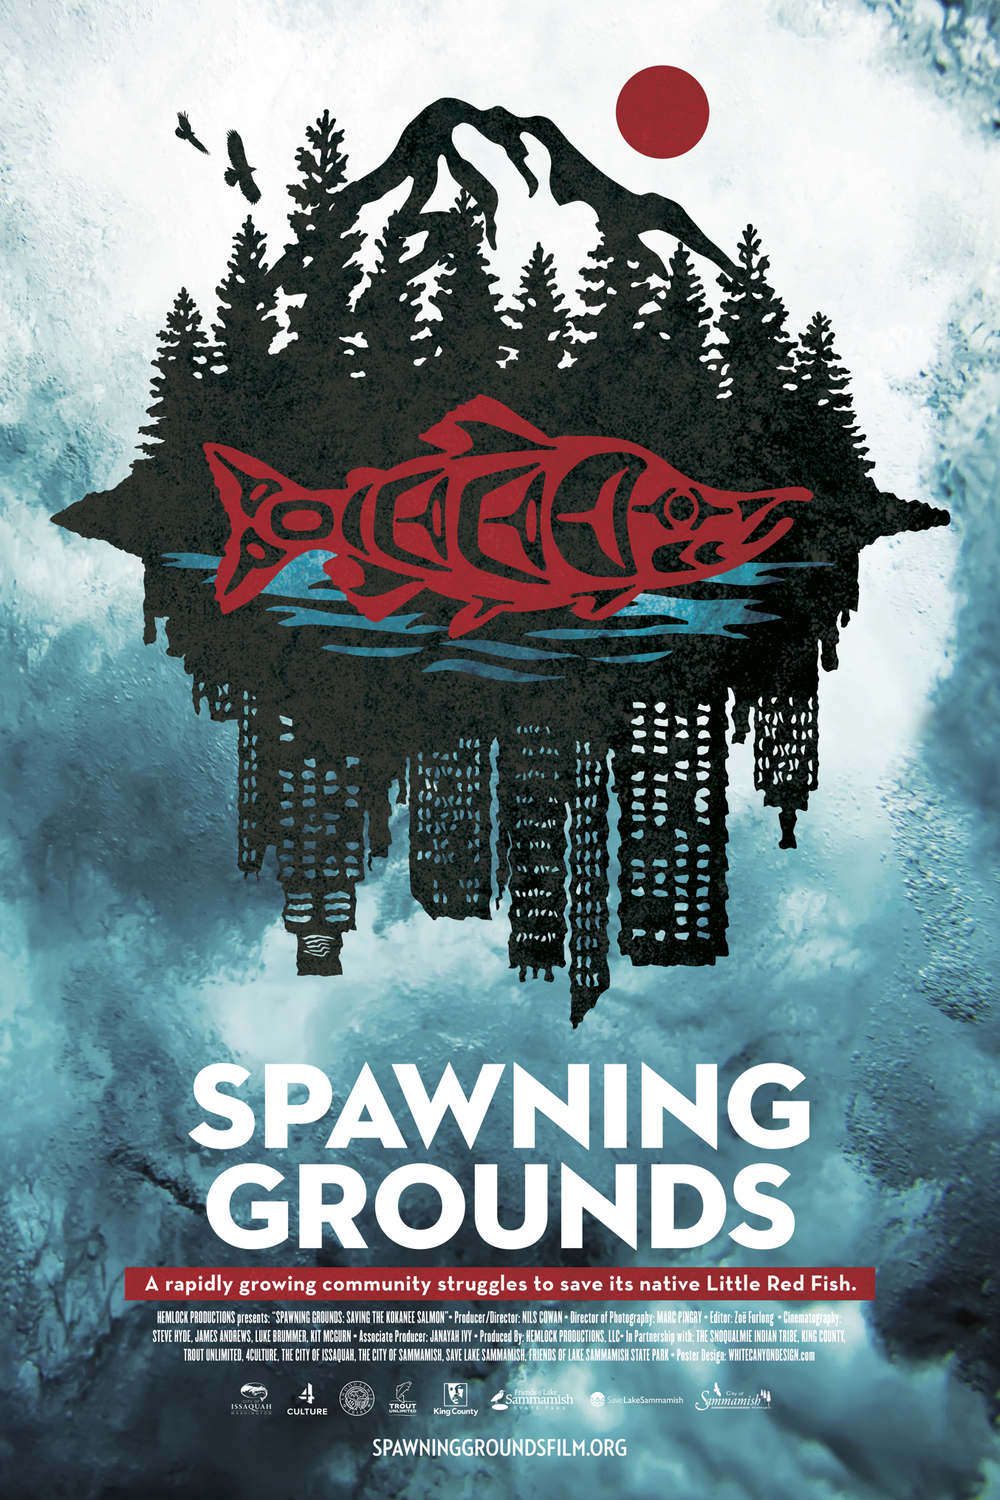 Race to the Spawning Grounds